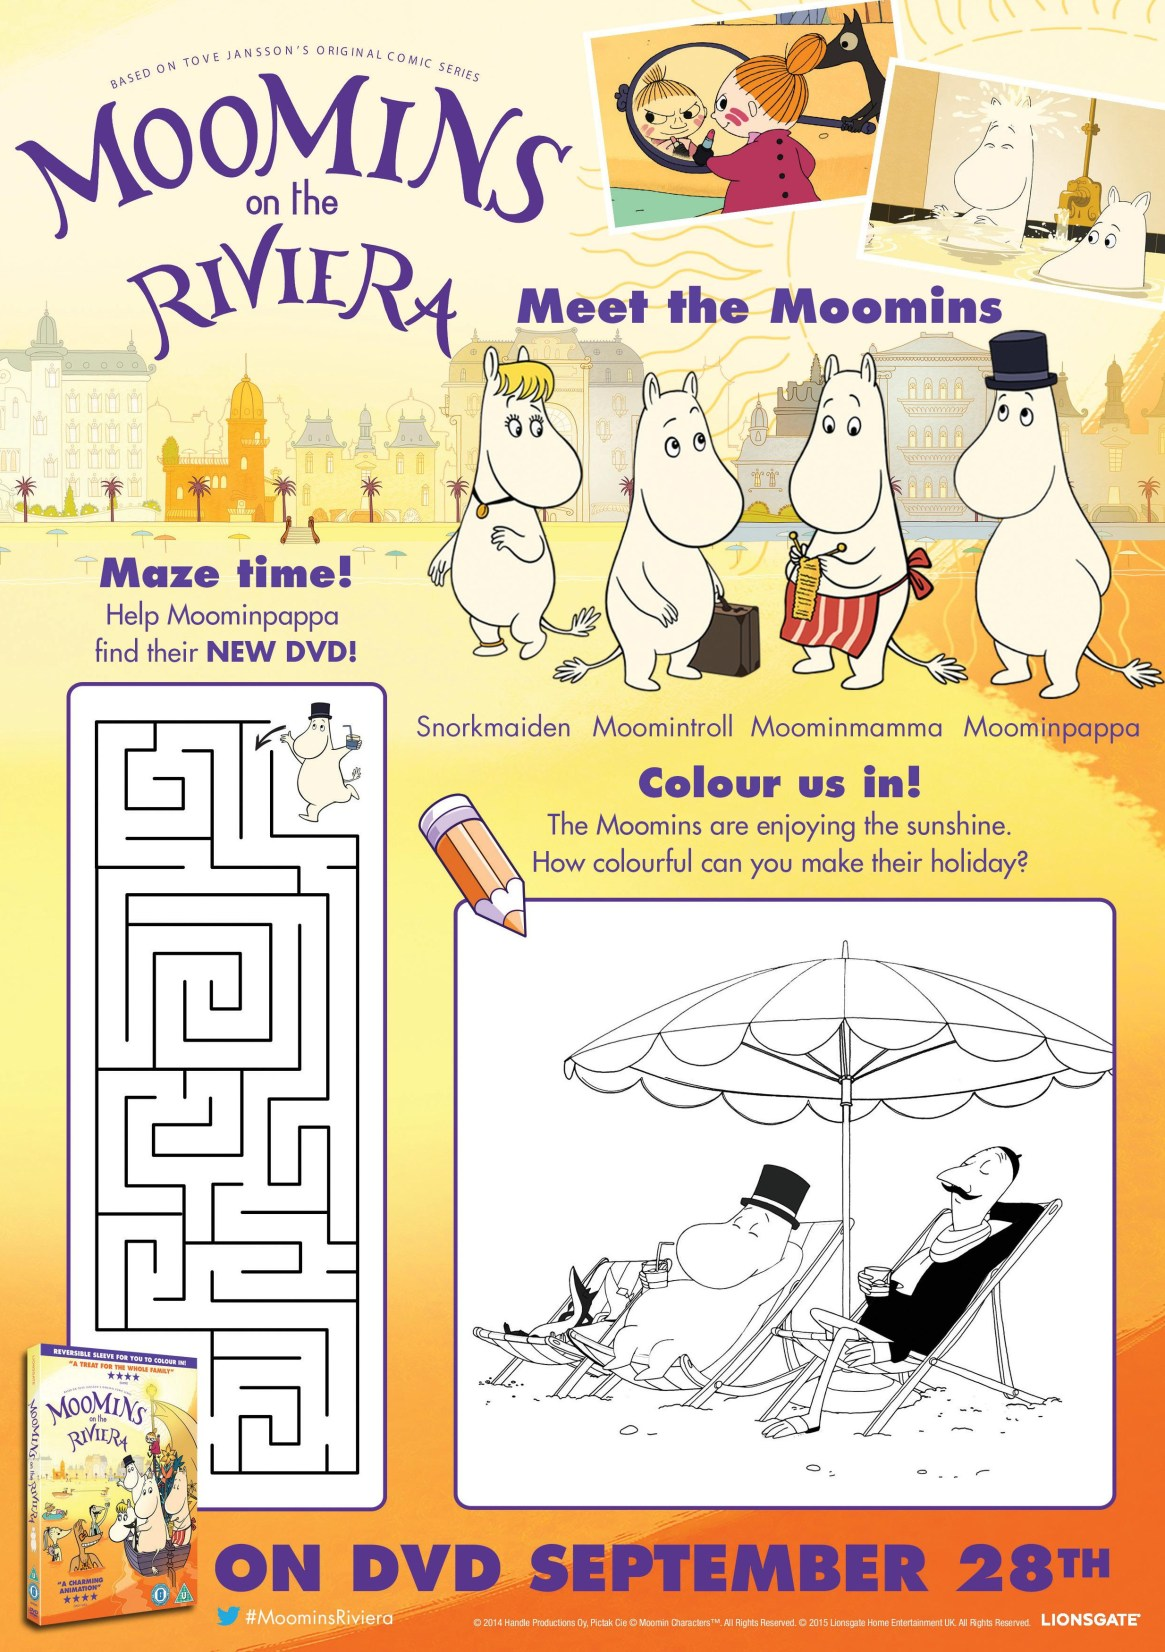 moomins printable activity sheet with maze and colouring